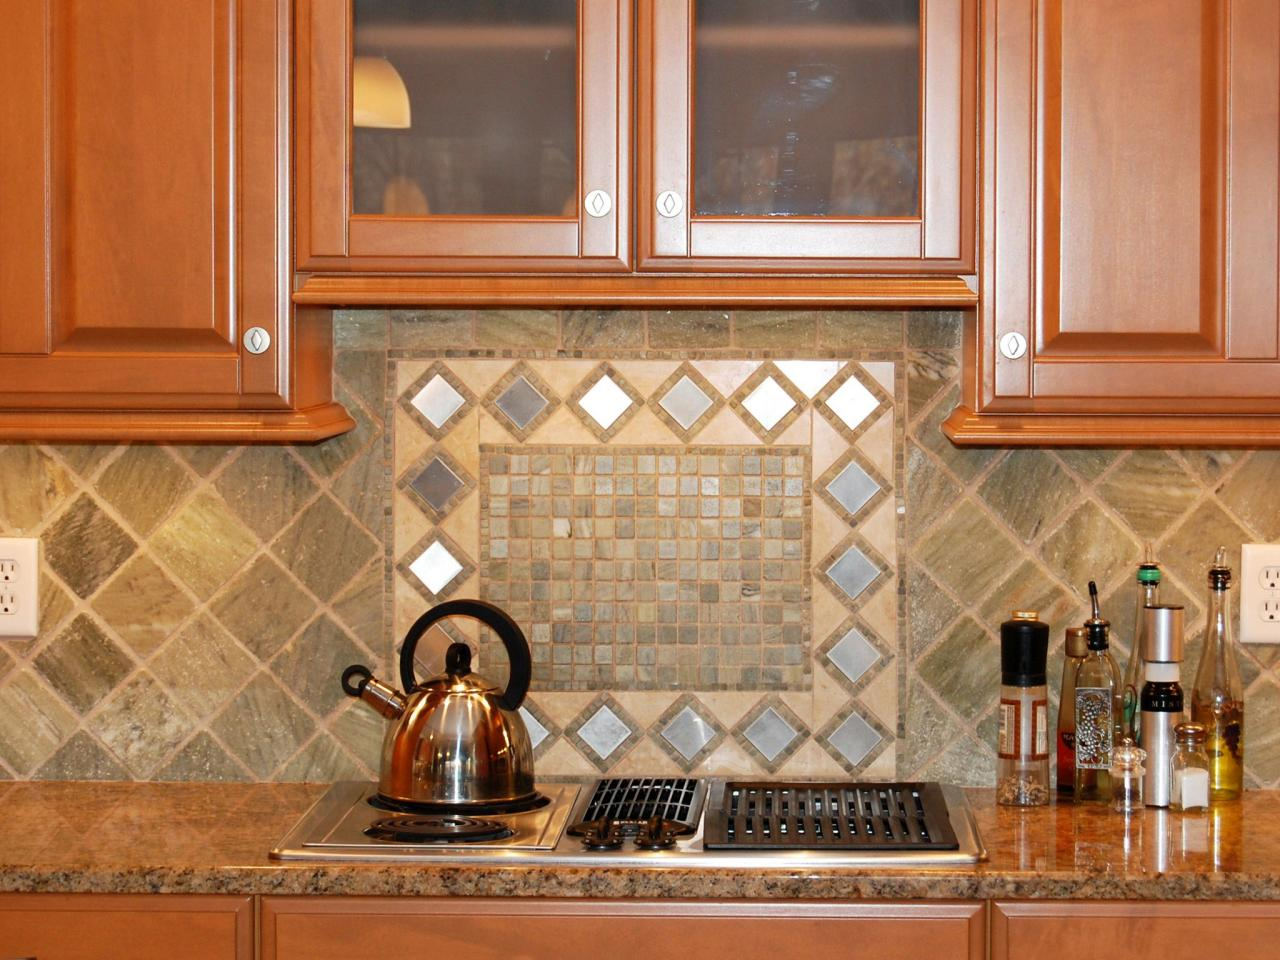 Kitchen Backsplash Ideas No Grout Suitable With Kitchen Backsplash Ideas Without Grout Suitable With Kitchen Backsplash Ideas With Green Cabinets Kitchen Backsplash Designs Inspiration Home Magazine